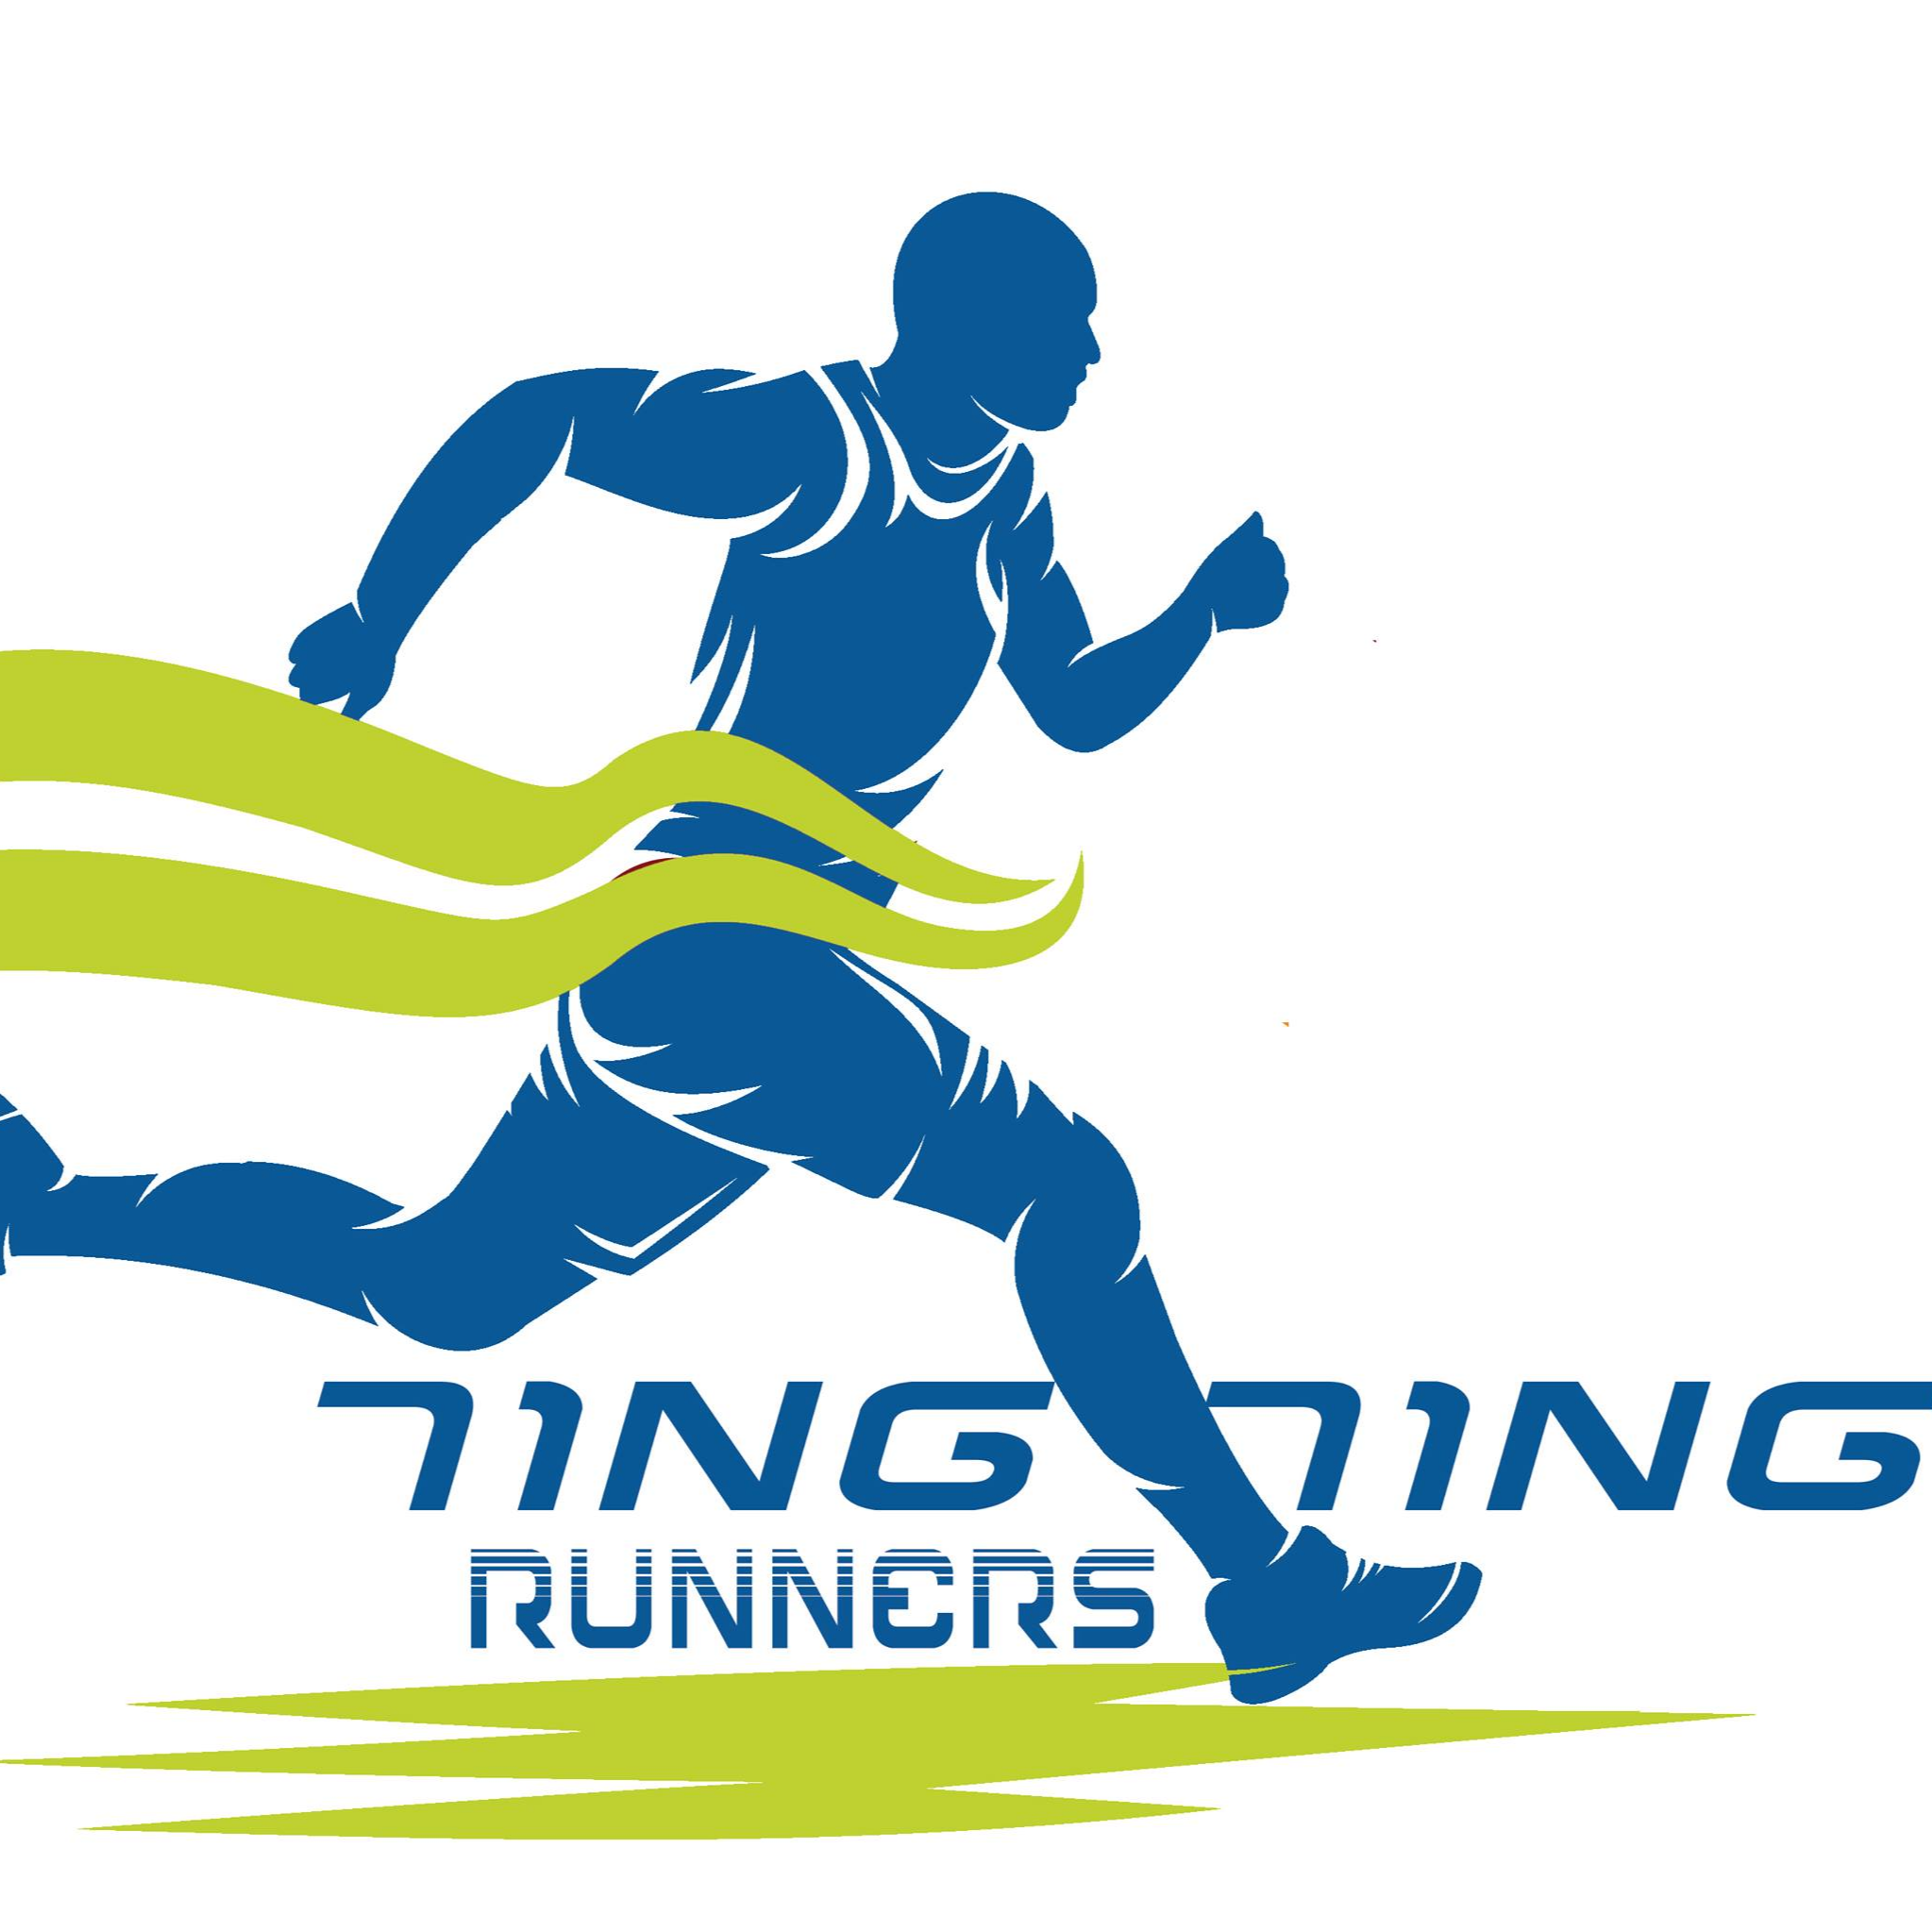 TING TING RUNNERS